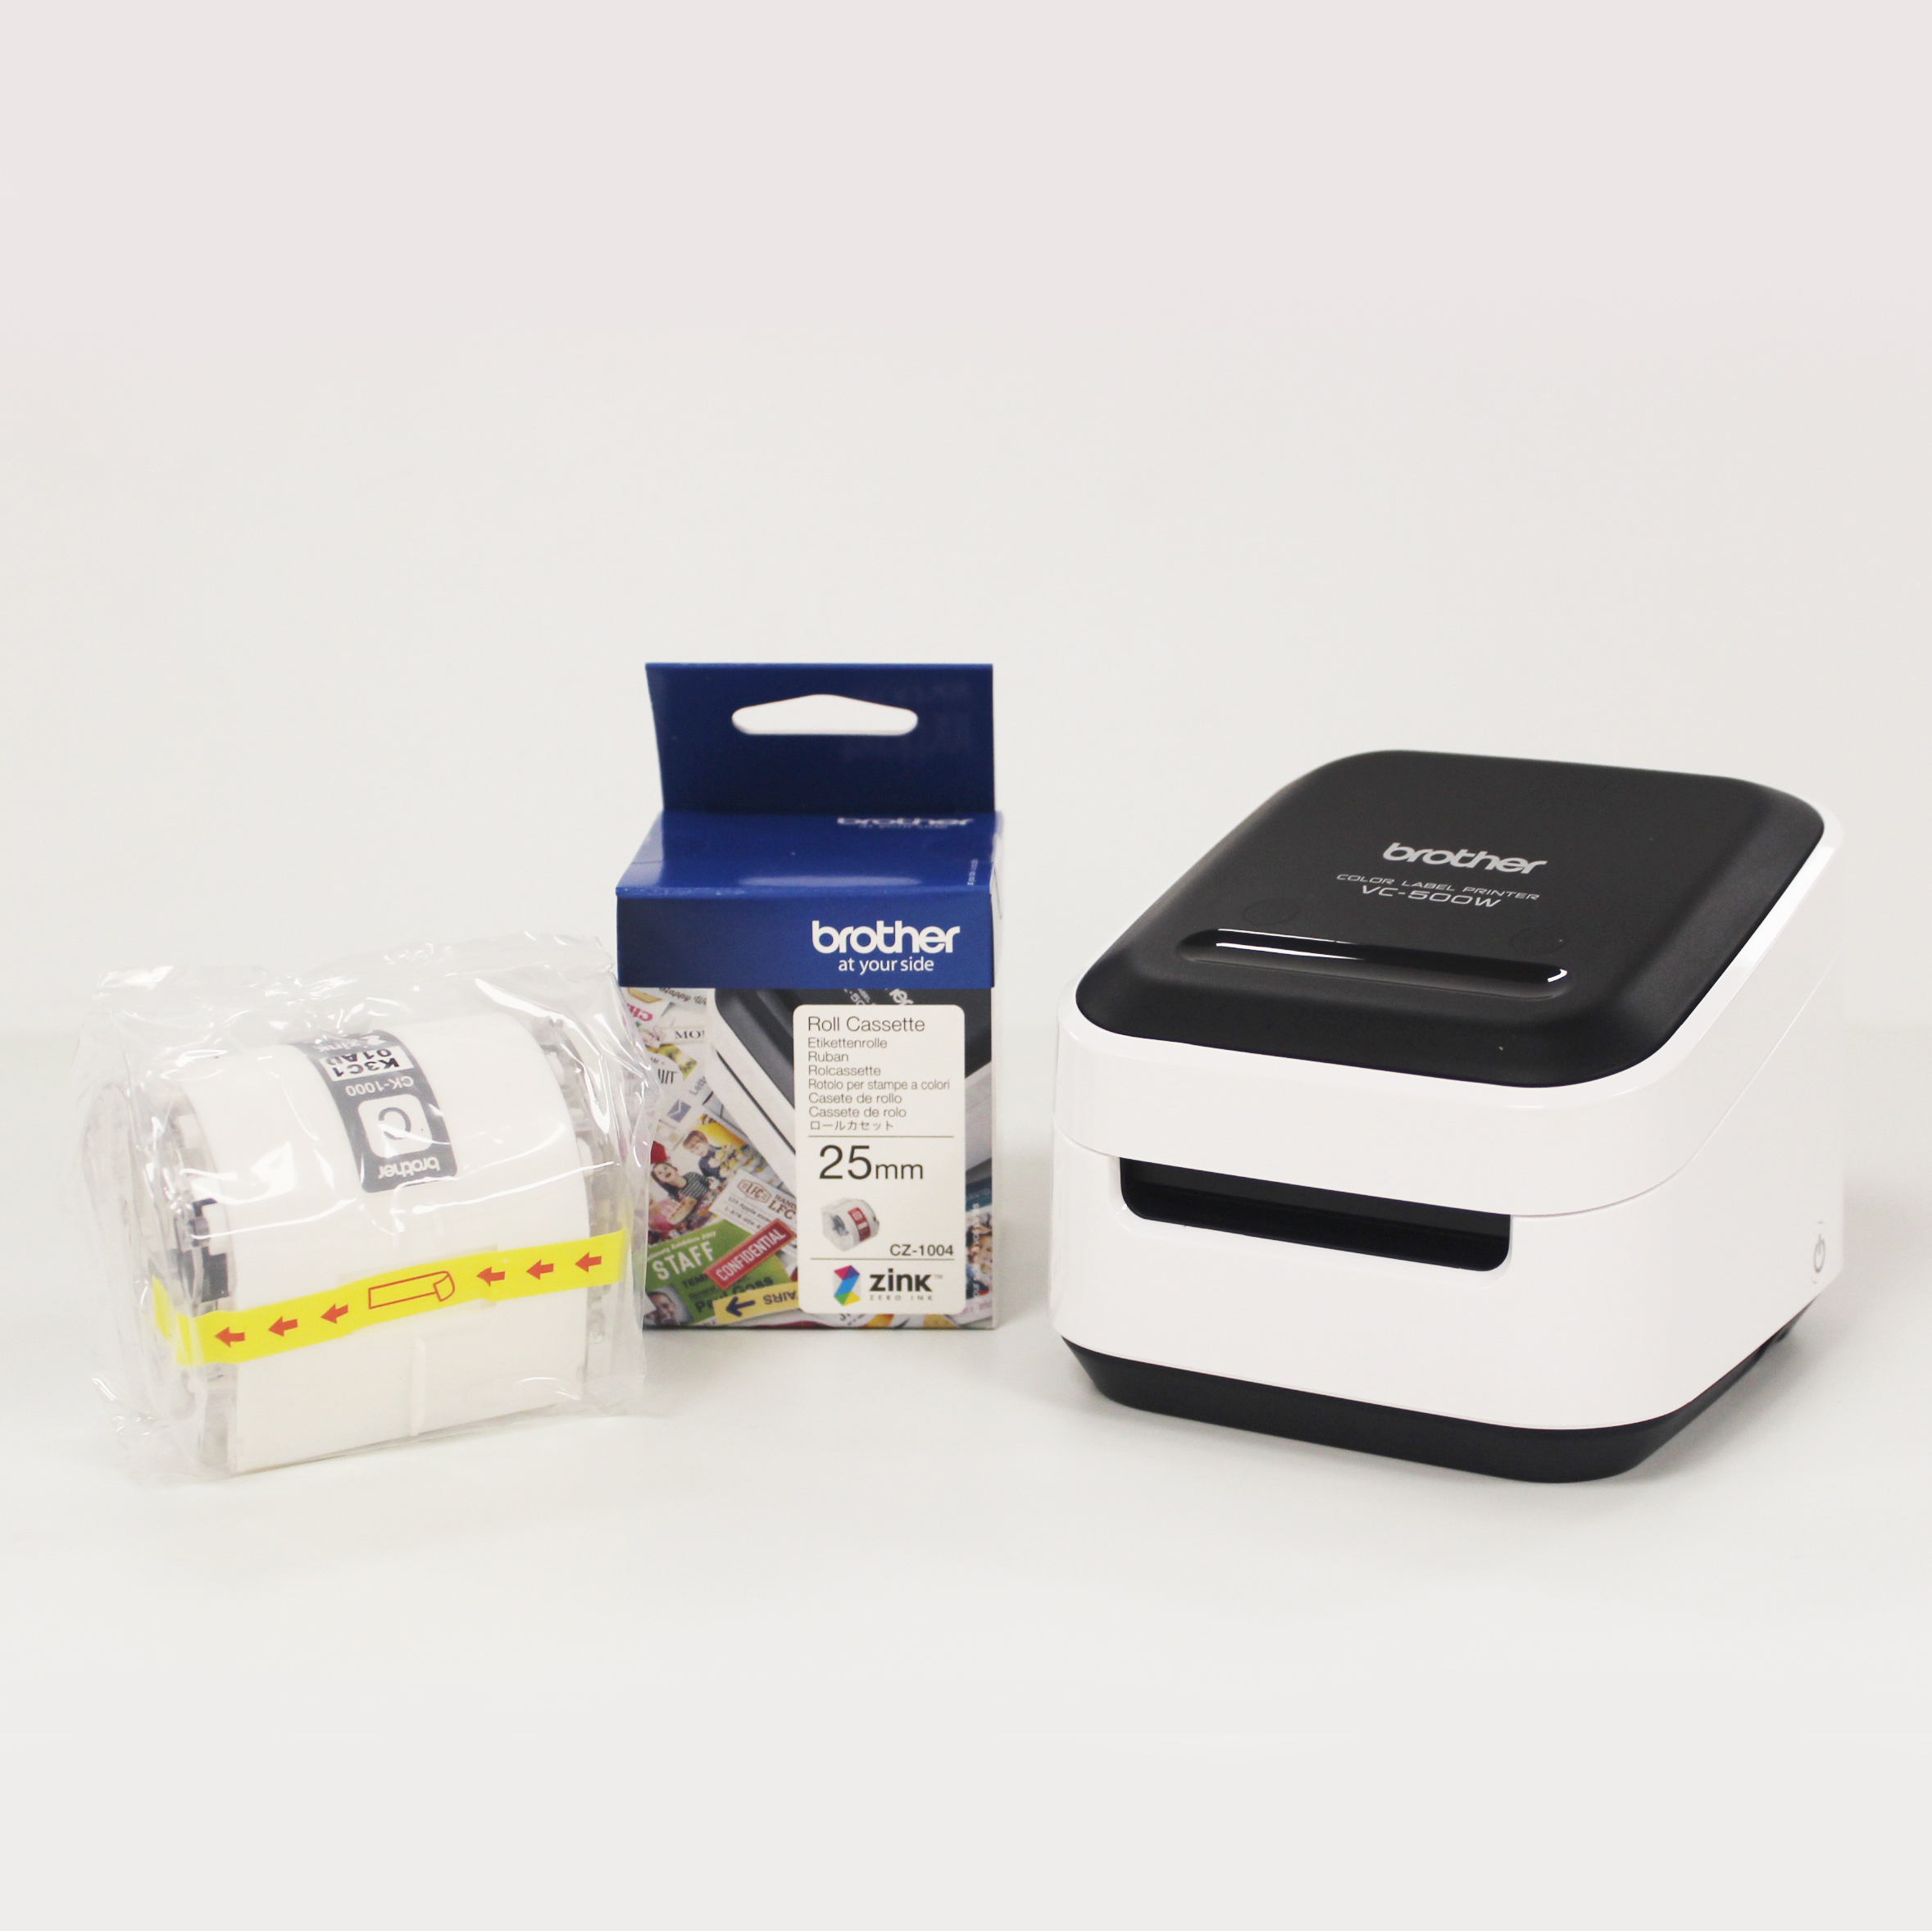 Brother VC-500W with Consumables